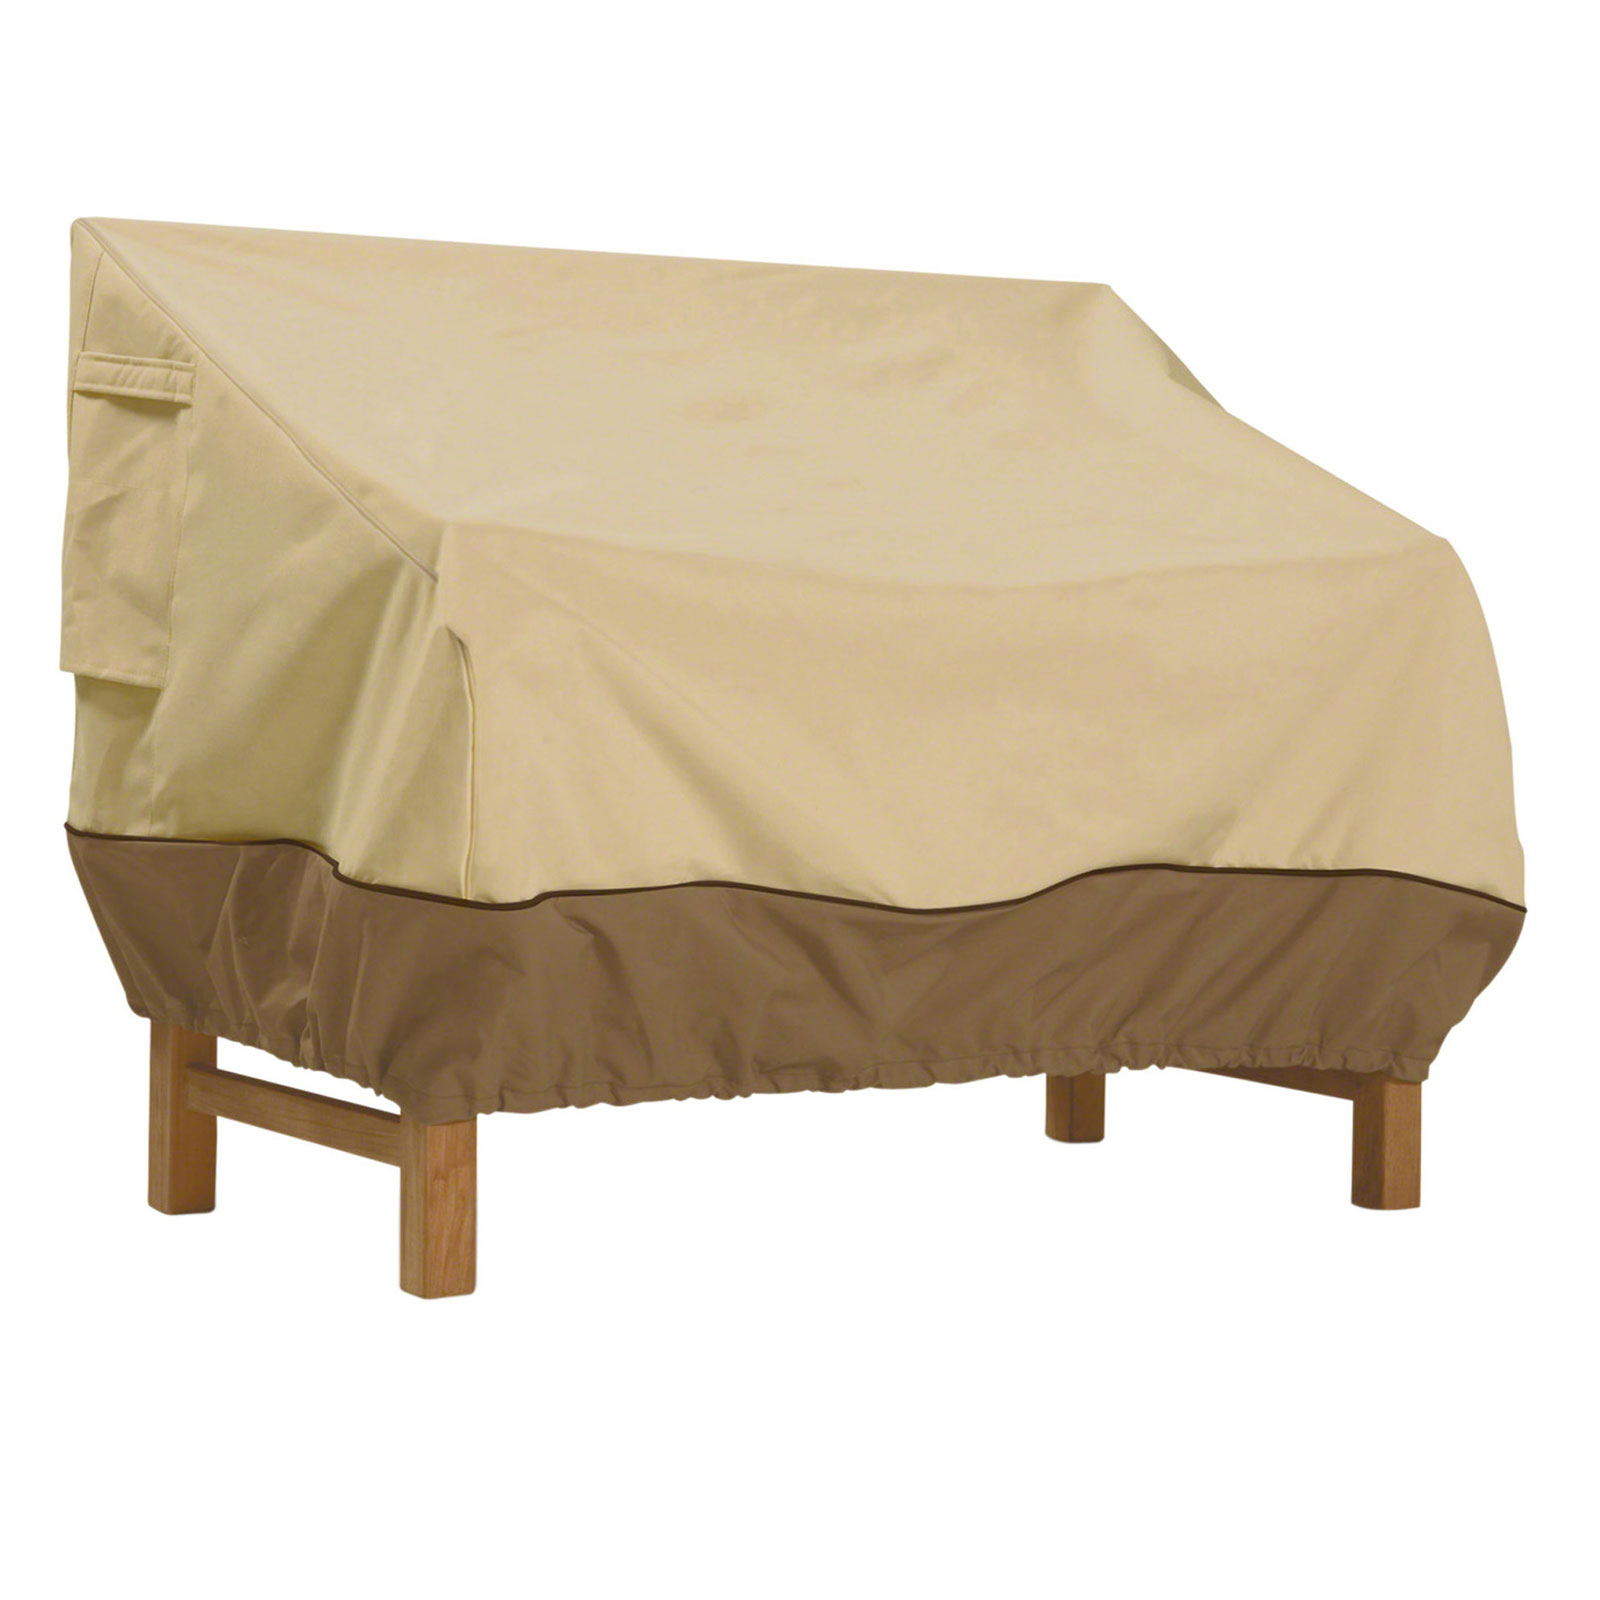 Outdoor Patio Bench Cover In Patio Furniture Covers